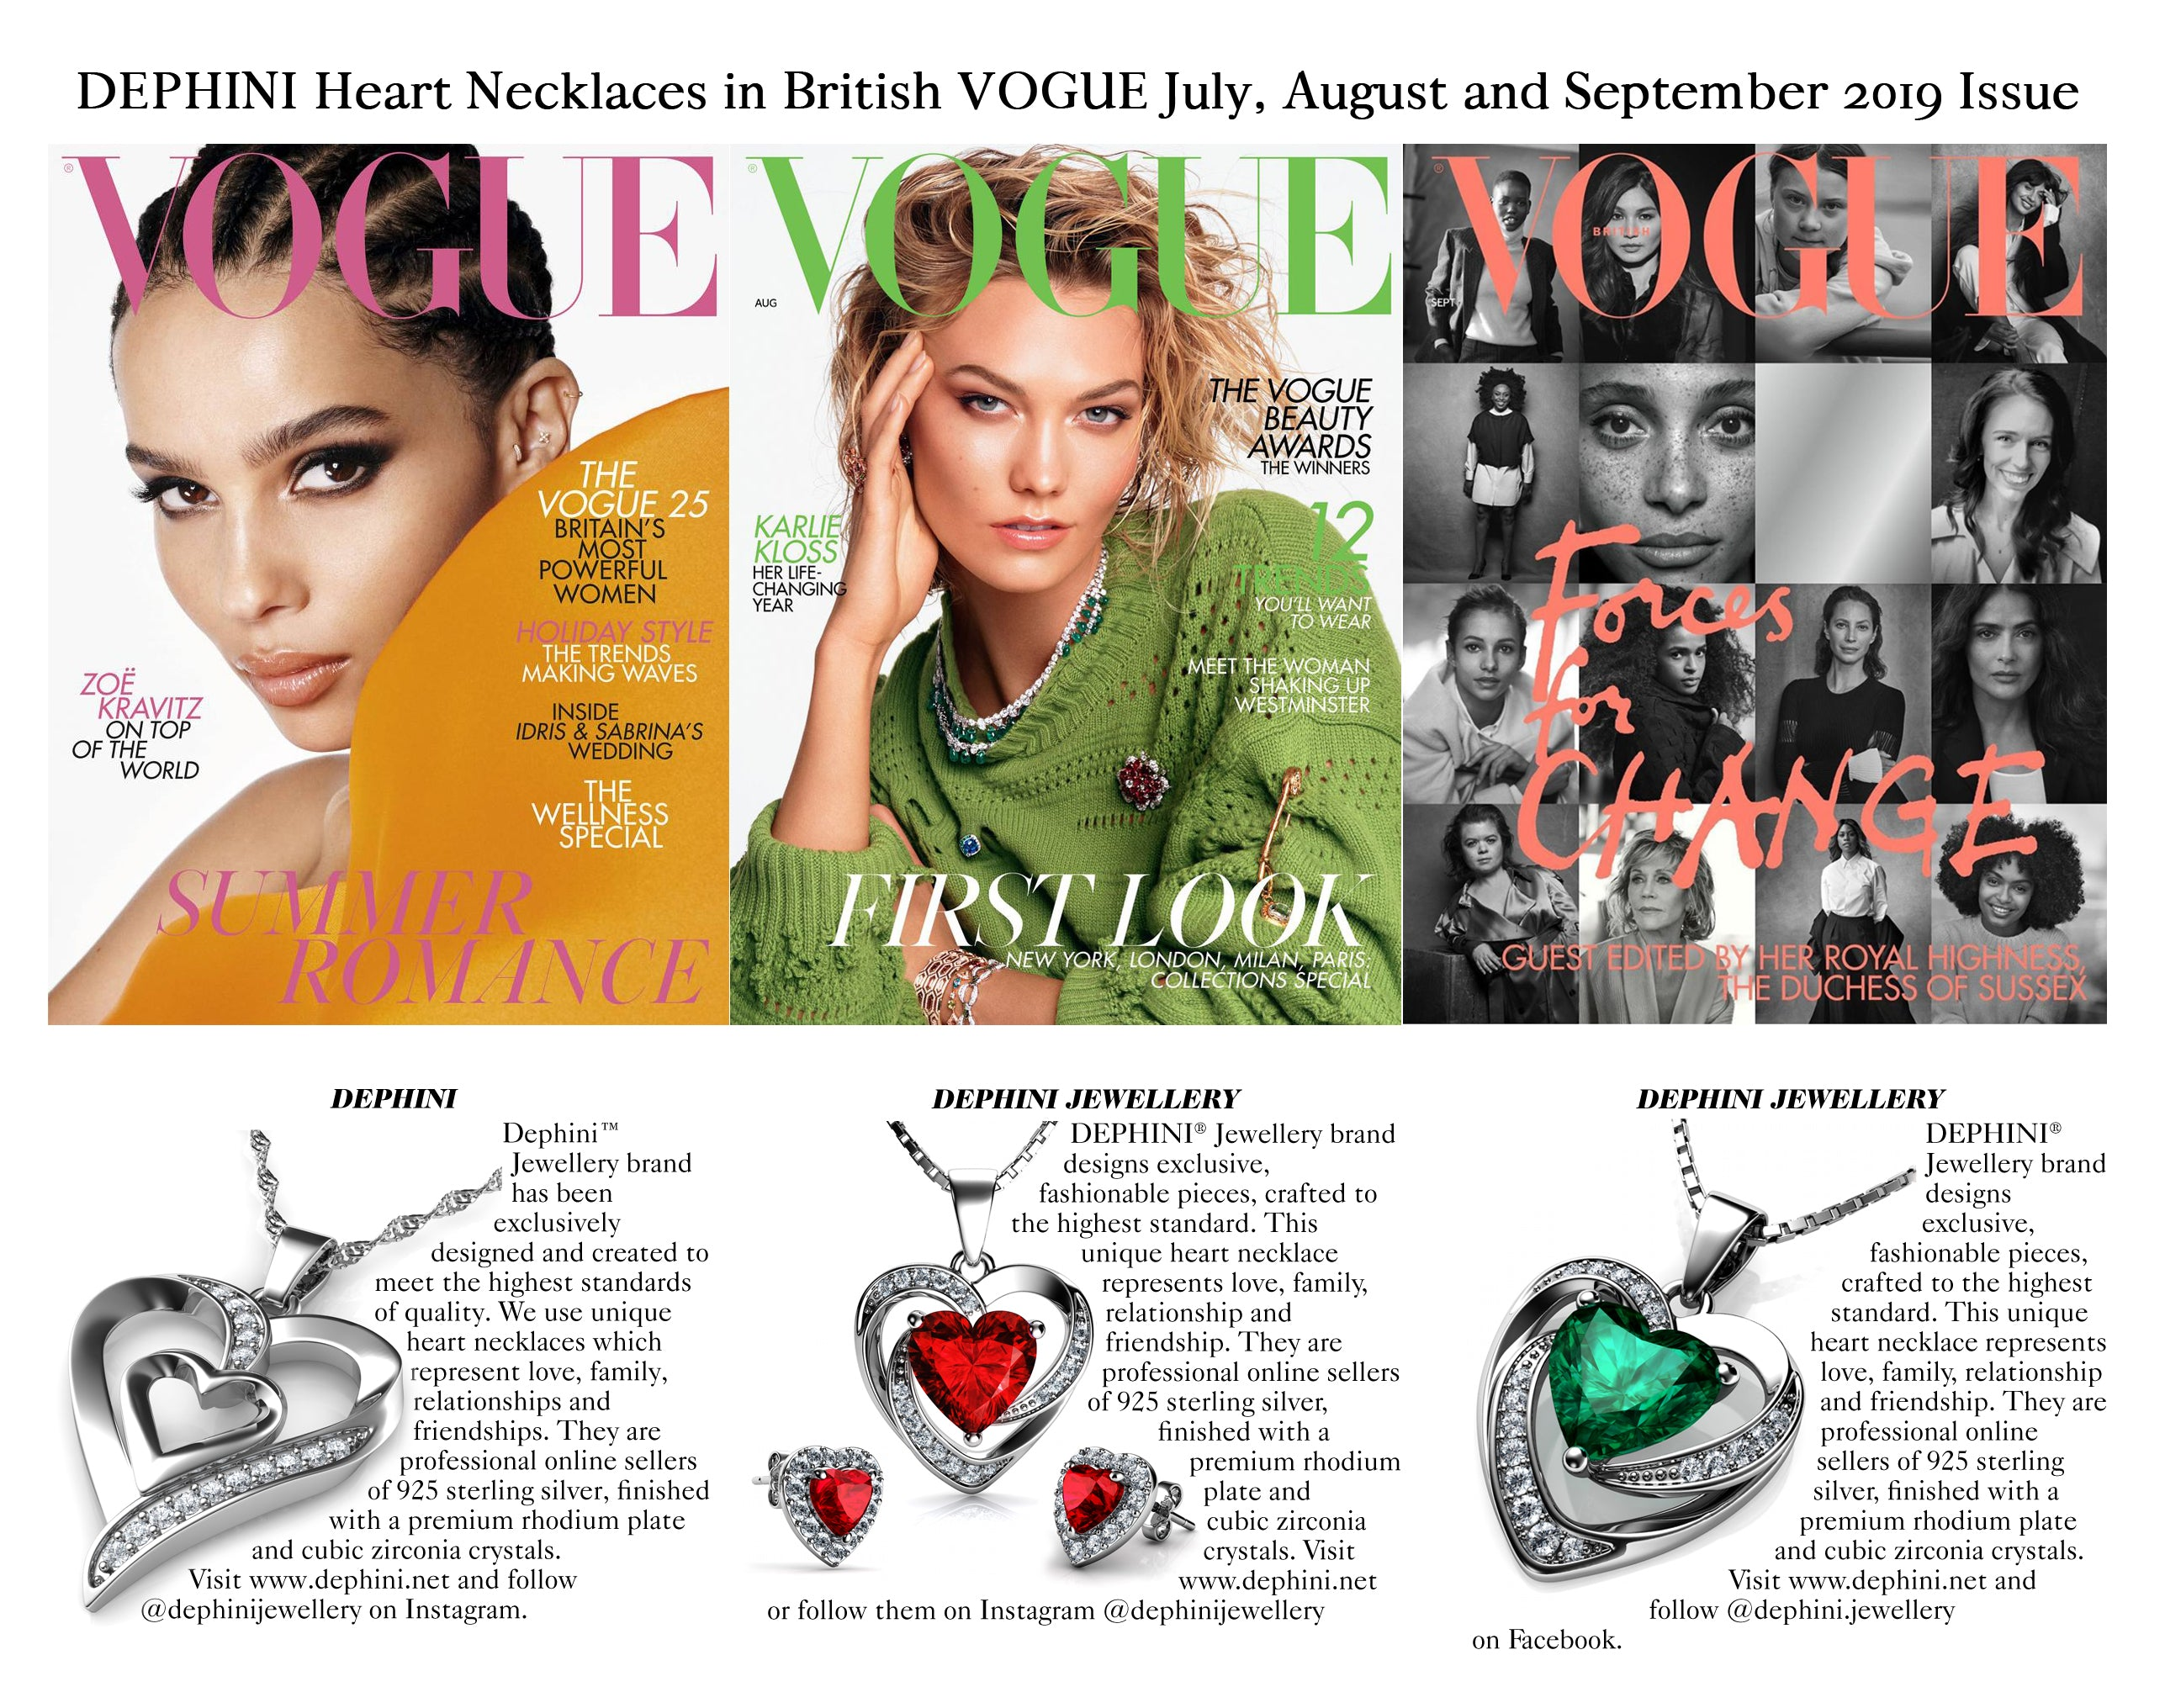 Vogue dephini jewellery heart necklaces reference